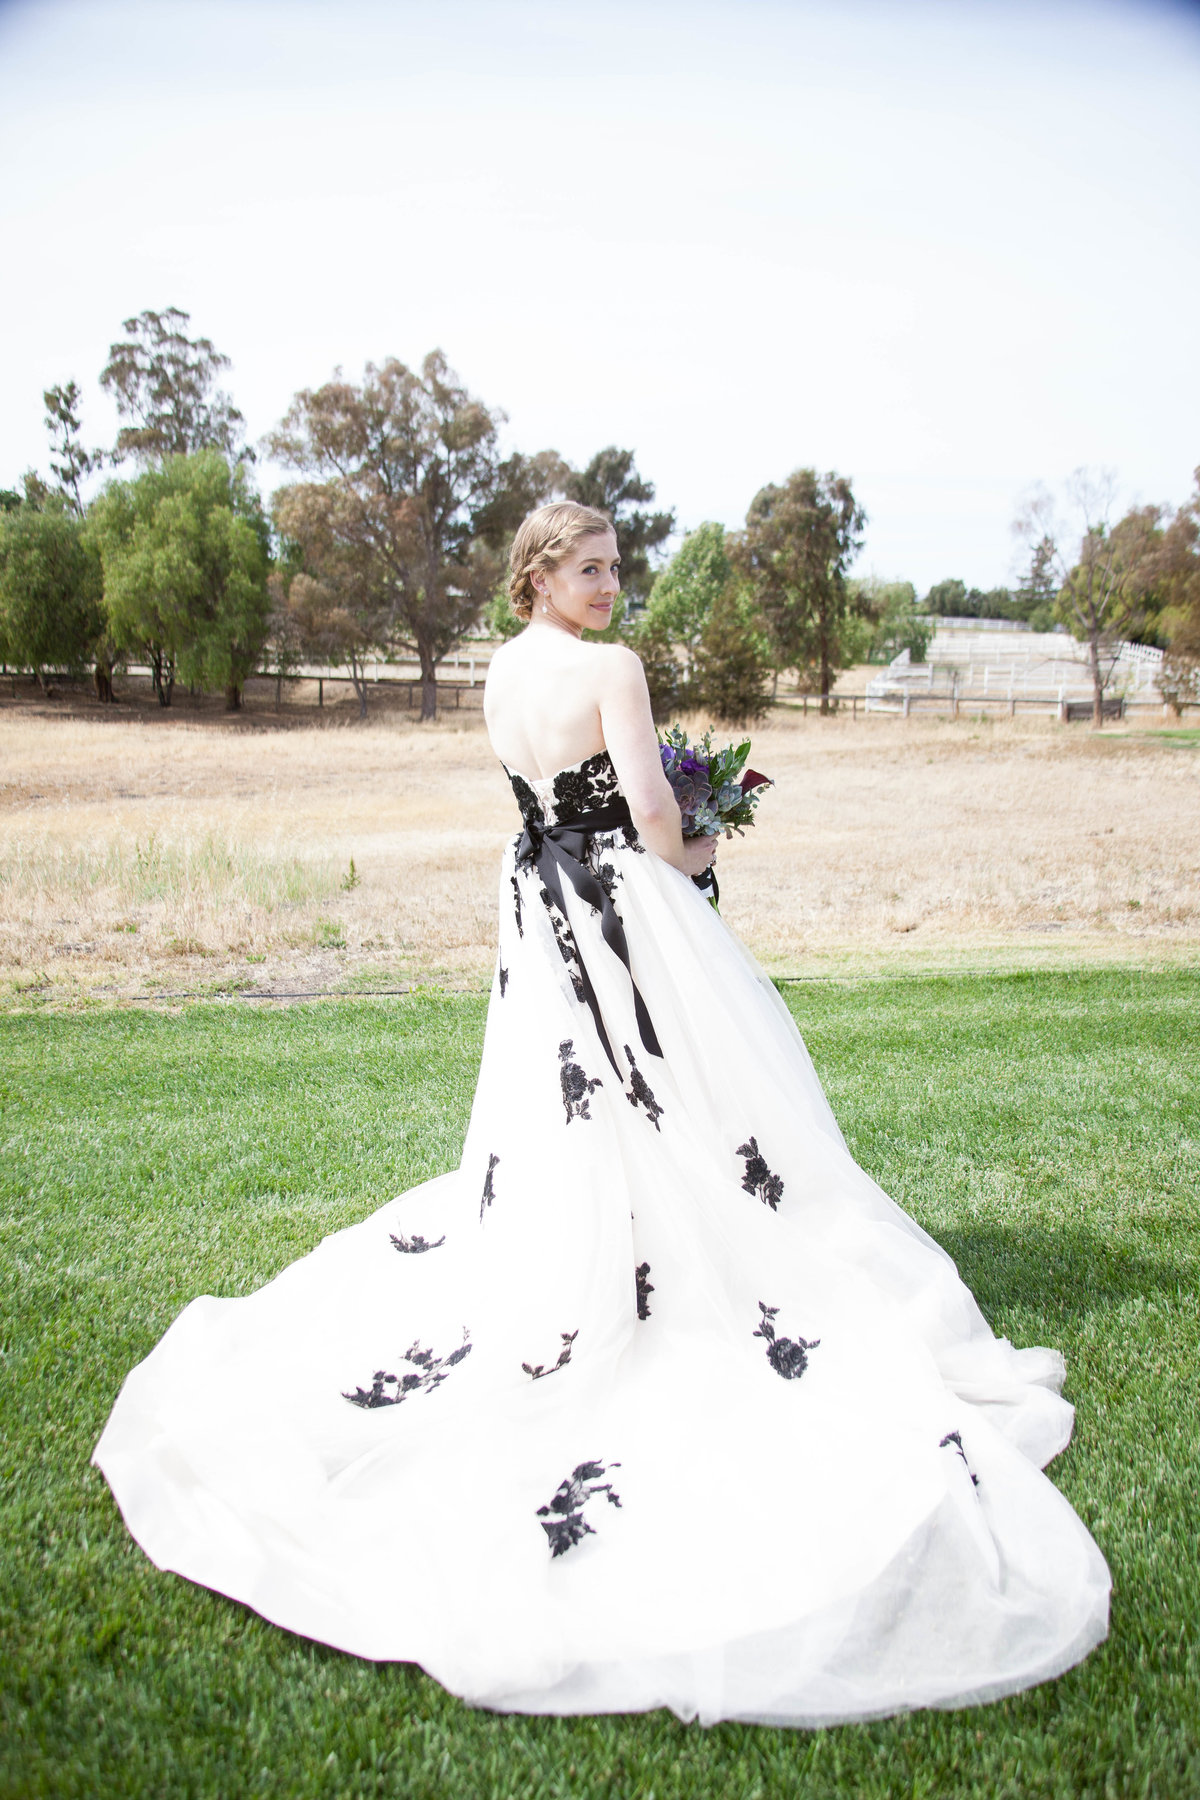 unique wedding dress for bride and her rustic wedding in wine country california